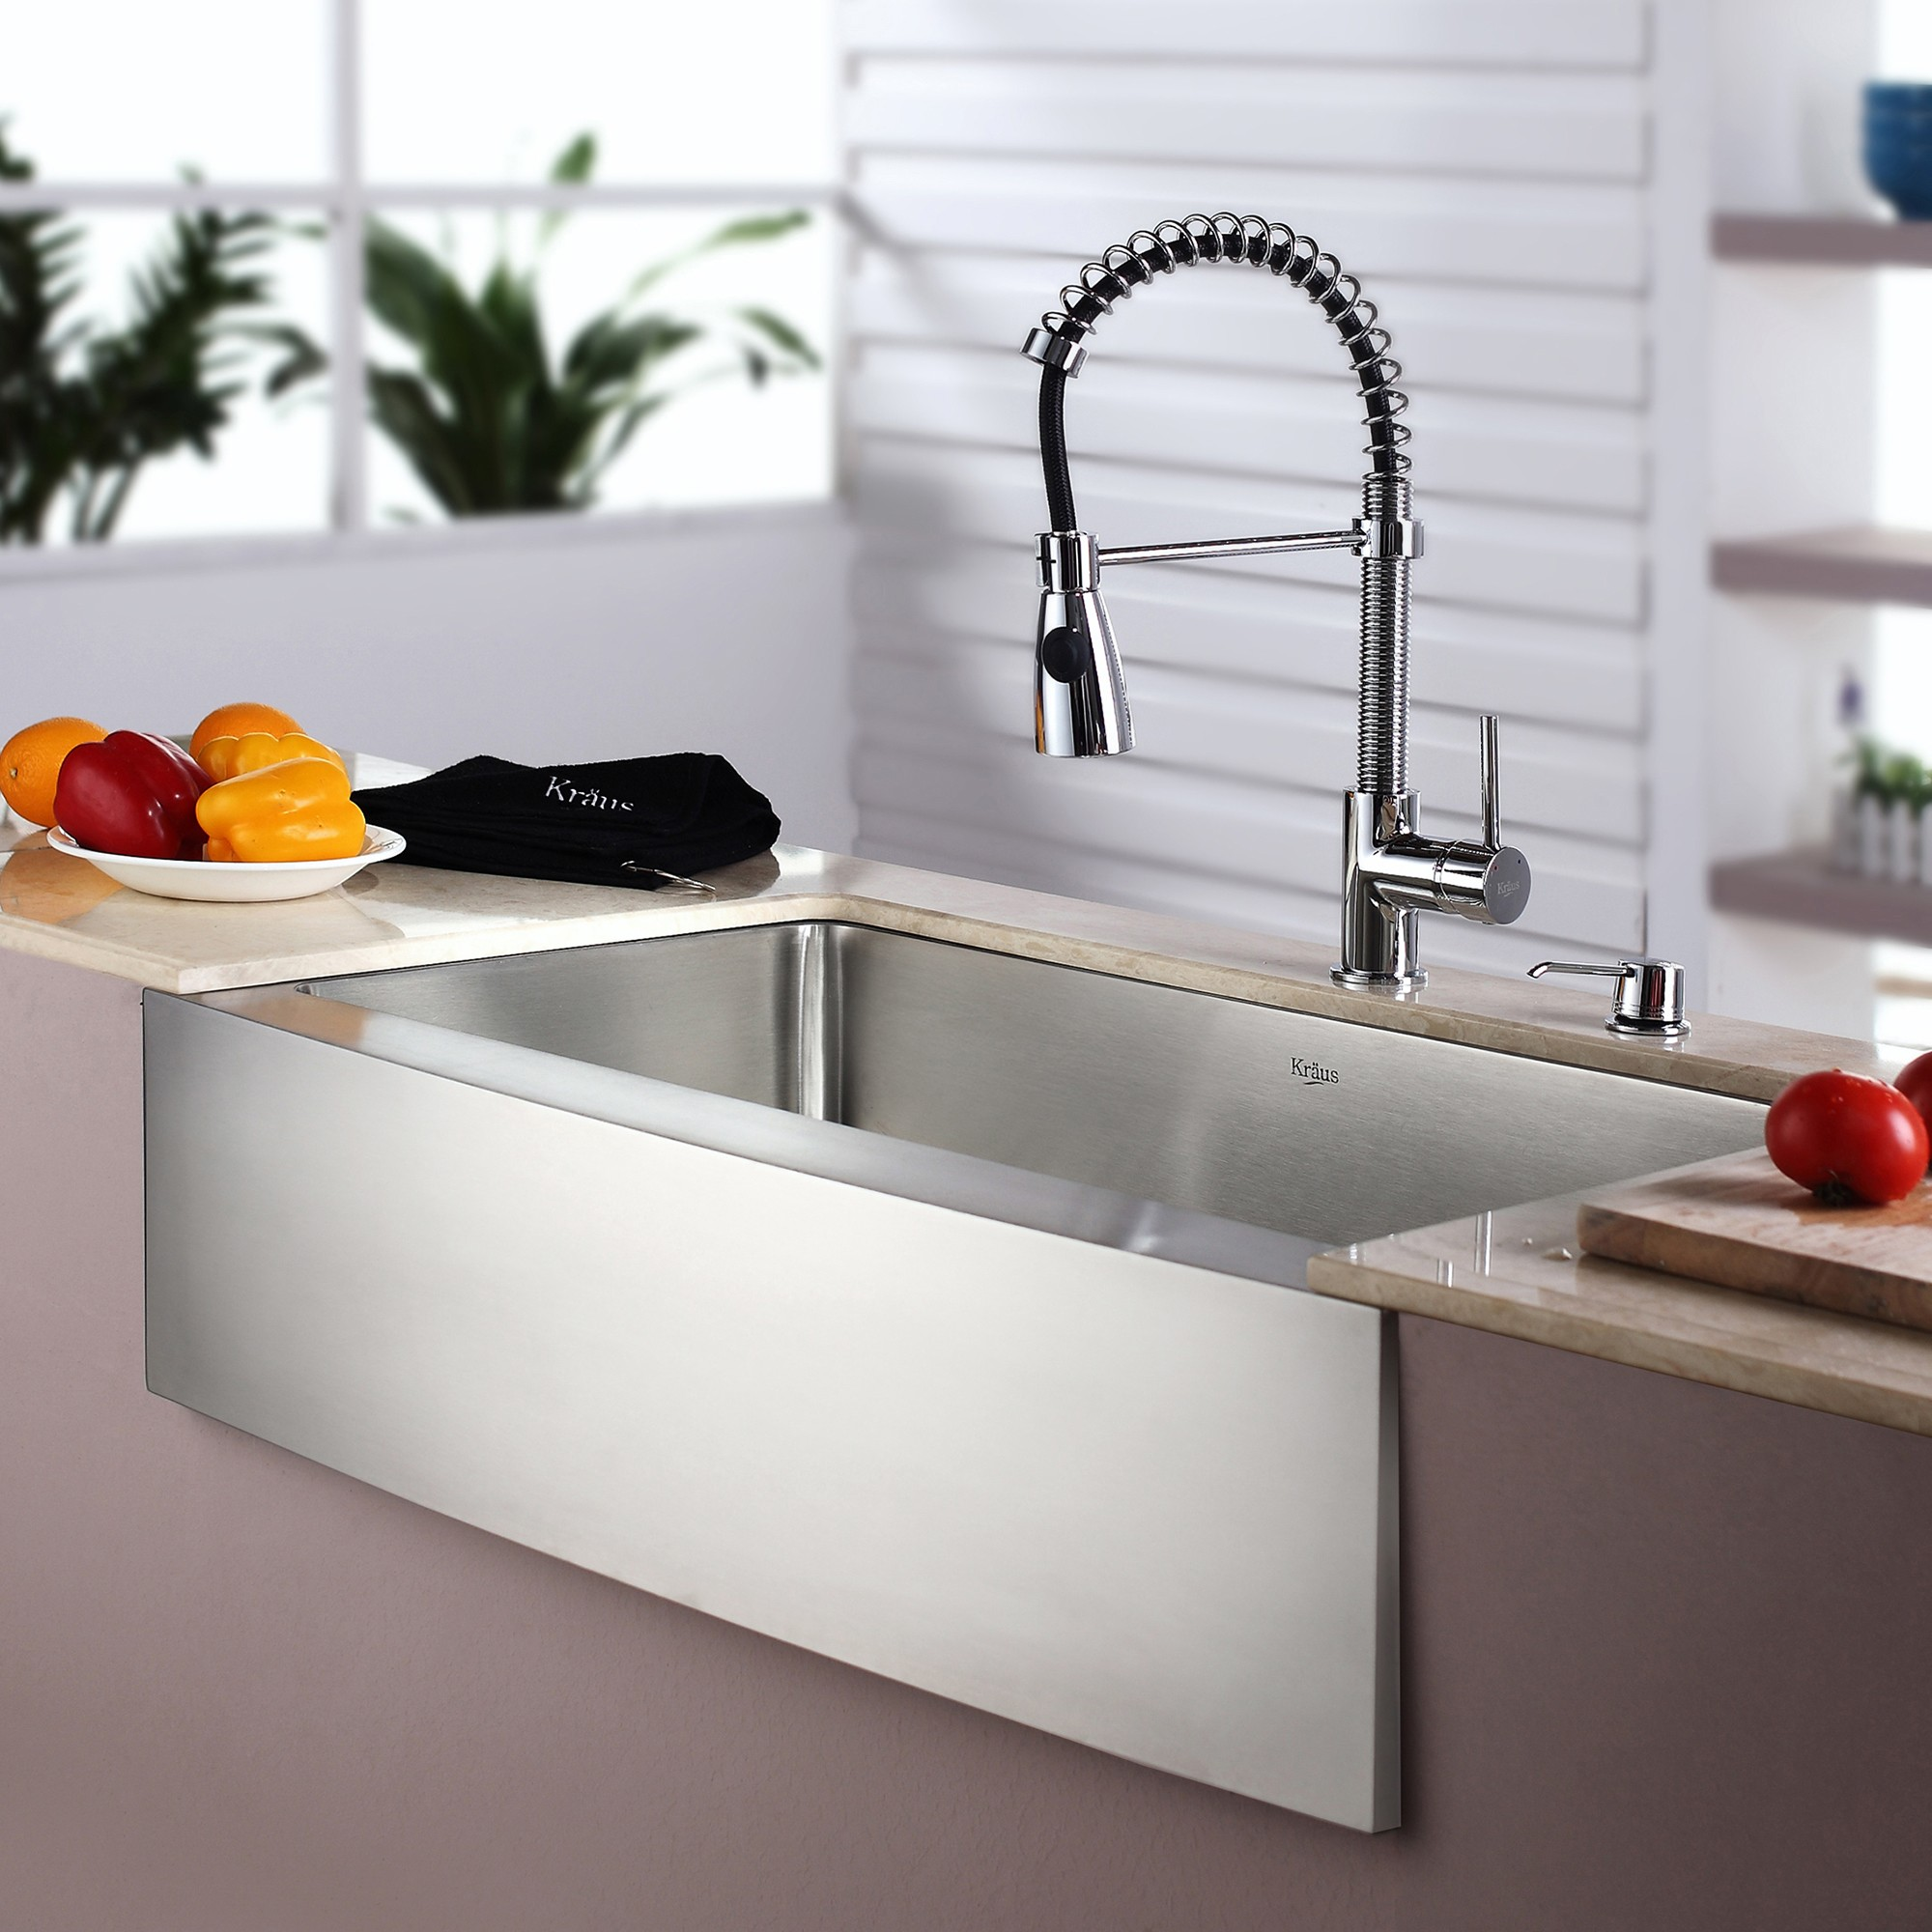 Menards Bar Sink | Menards Sinks | Stainless Steel Undermount Kitchen Sink